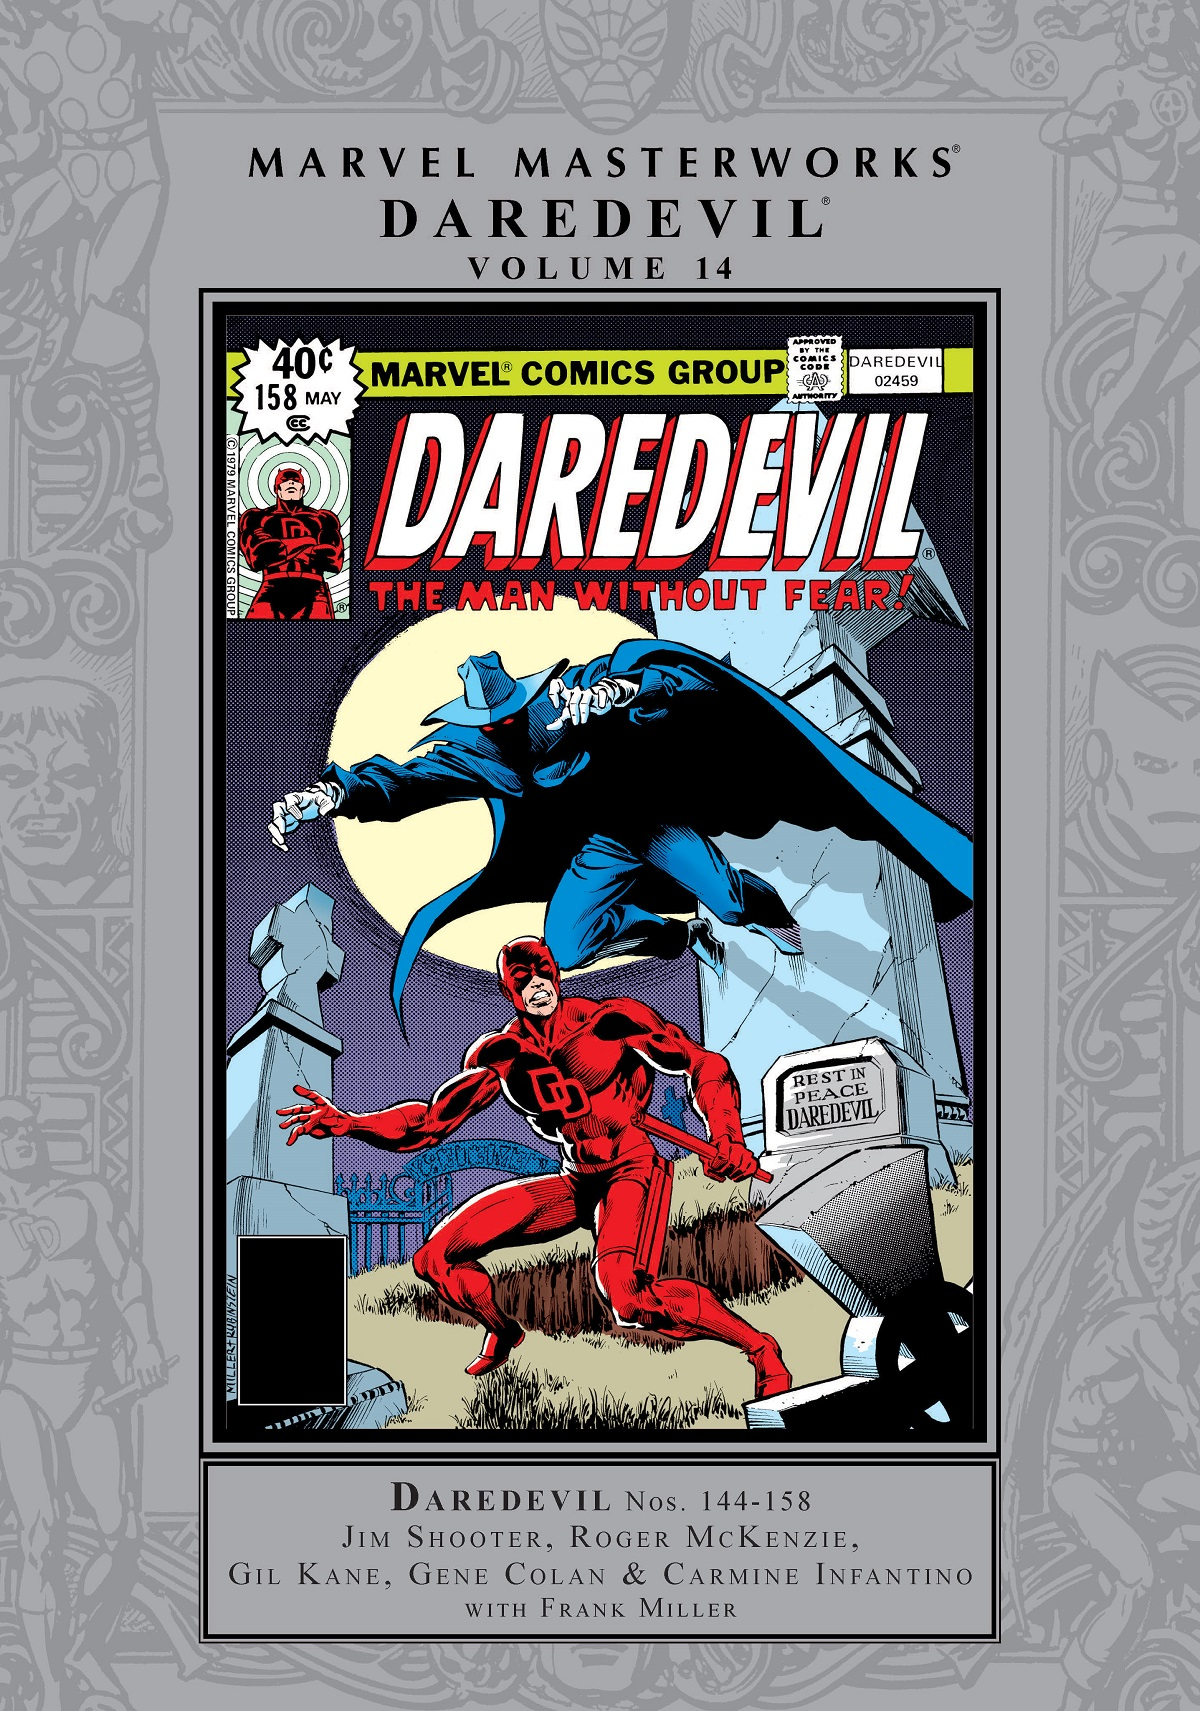 Marvel Masterworks: Daredevil Vol. 14 (Hardcover)